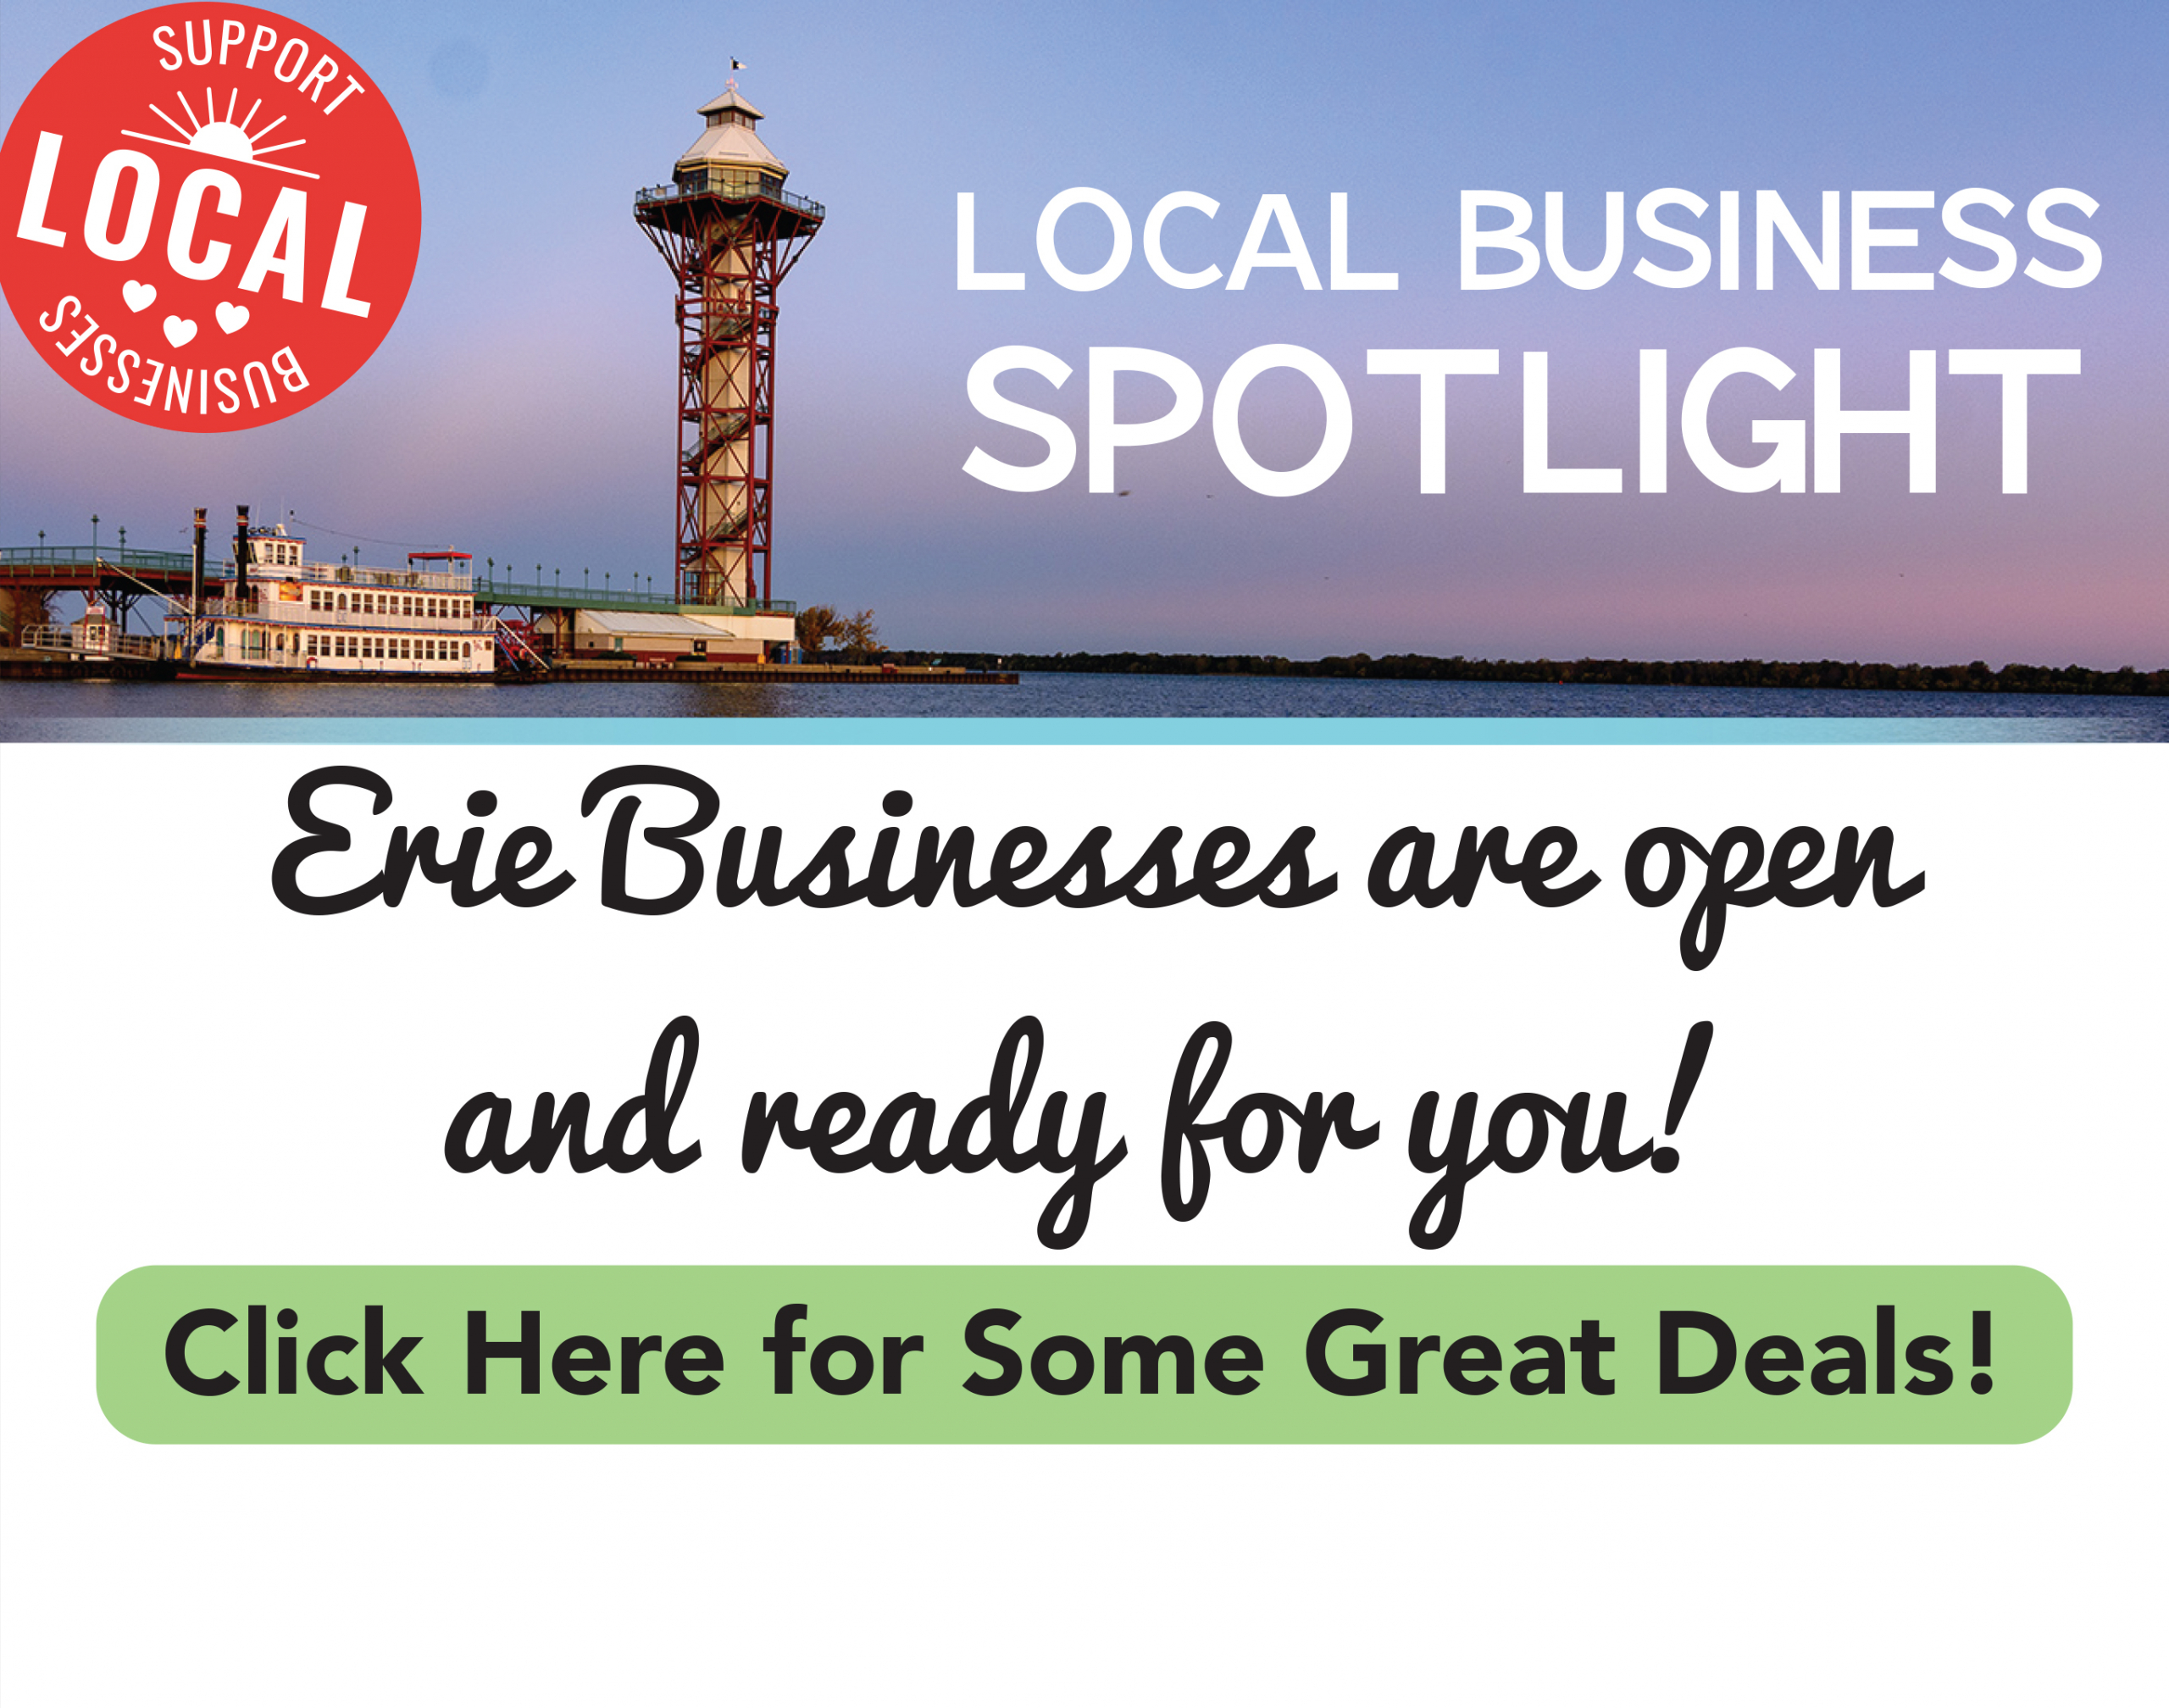 Local Businesses are waiting for You!